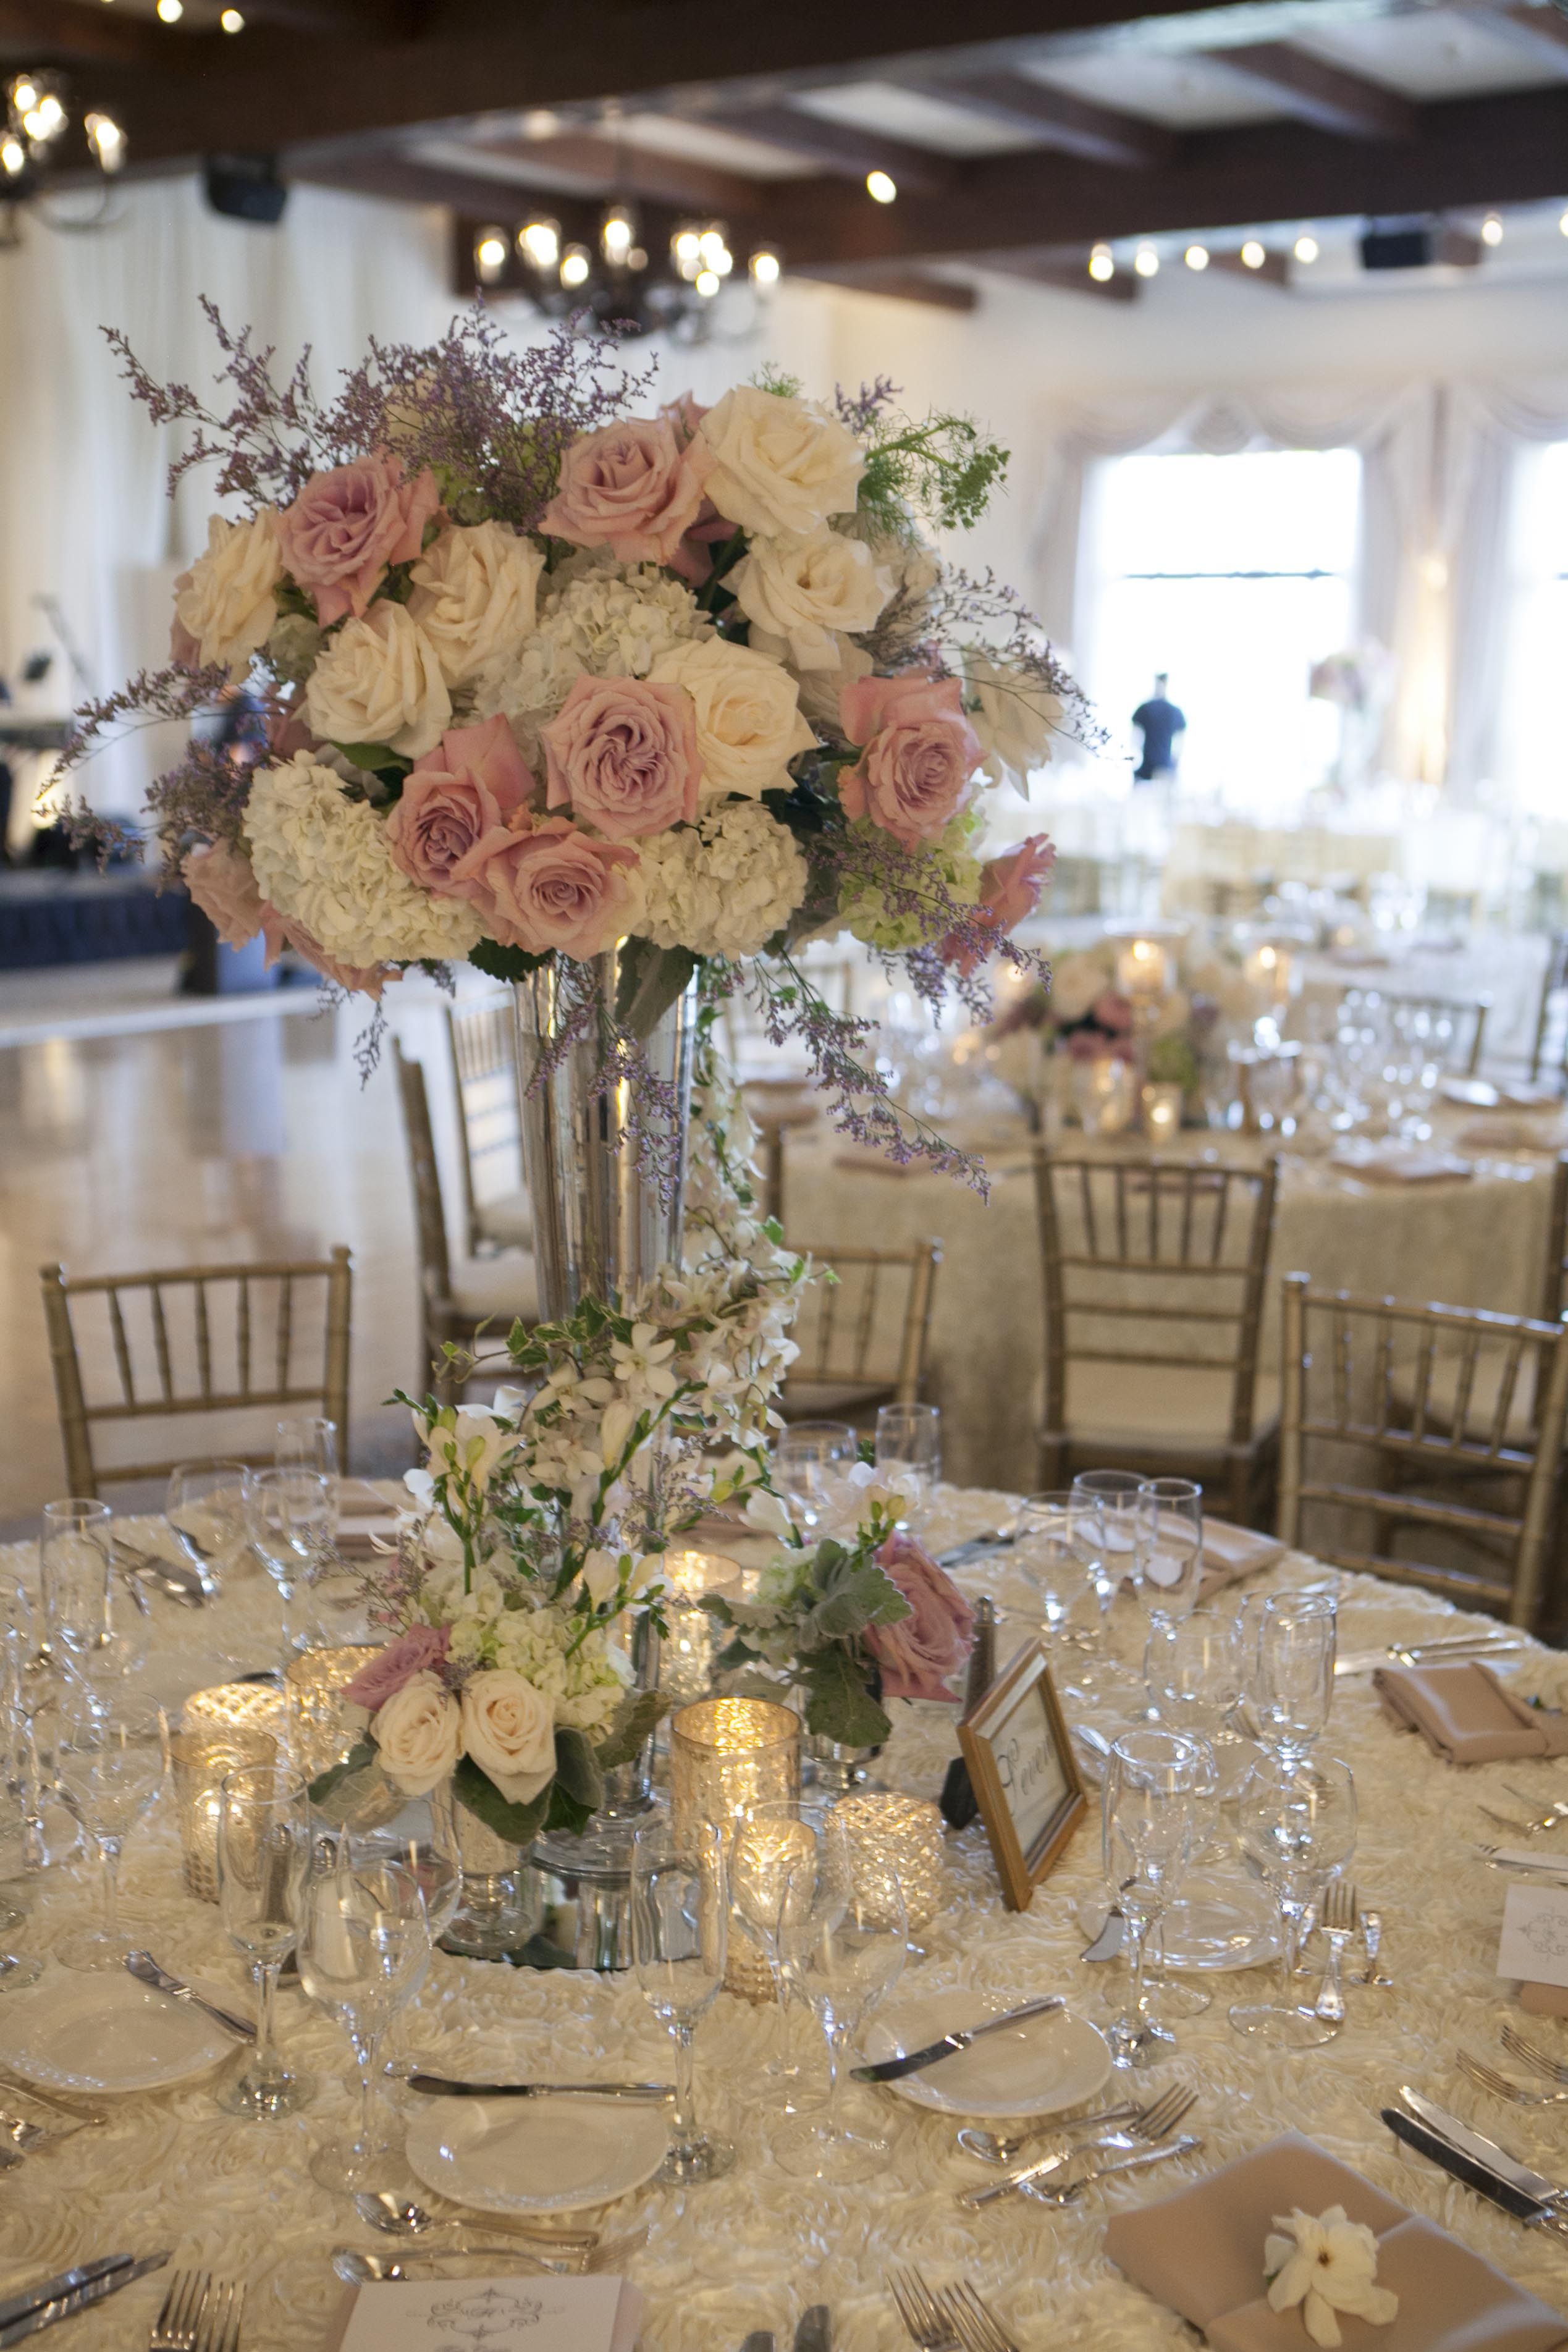 Follow us signaturebride on twitter and on facebook signature at the base of the centerpieces collections of mercury glass votives and small florals including roses freesias dusty miller and variegated ivy filled reviewsmspy